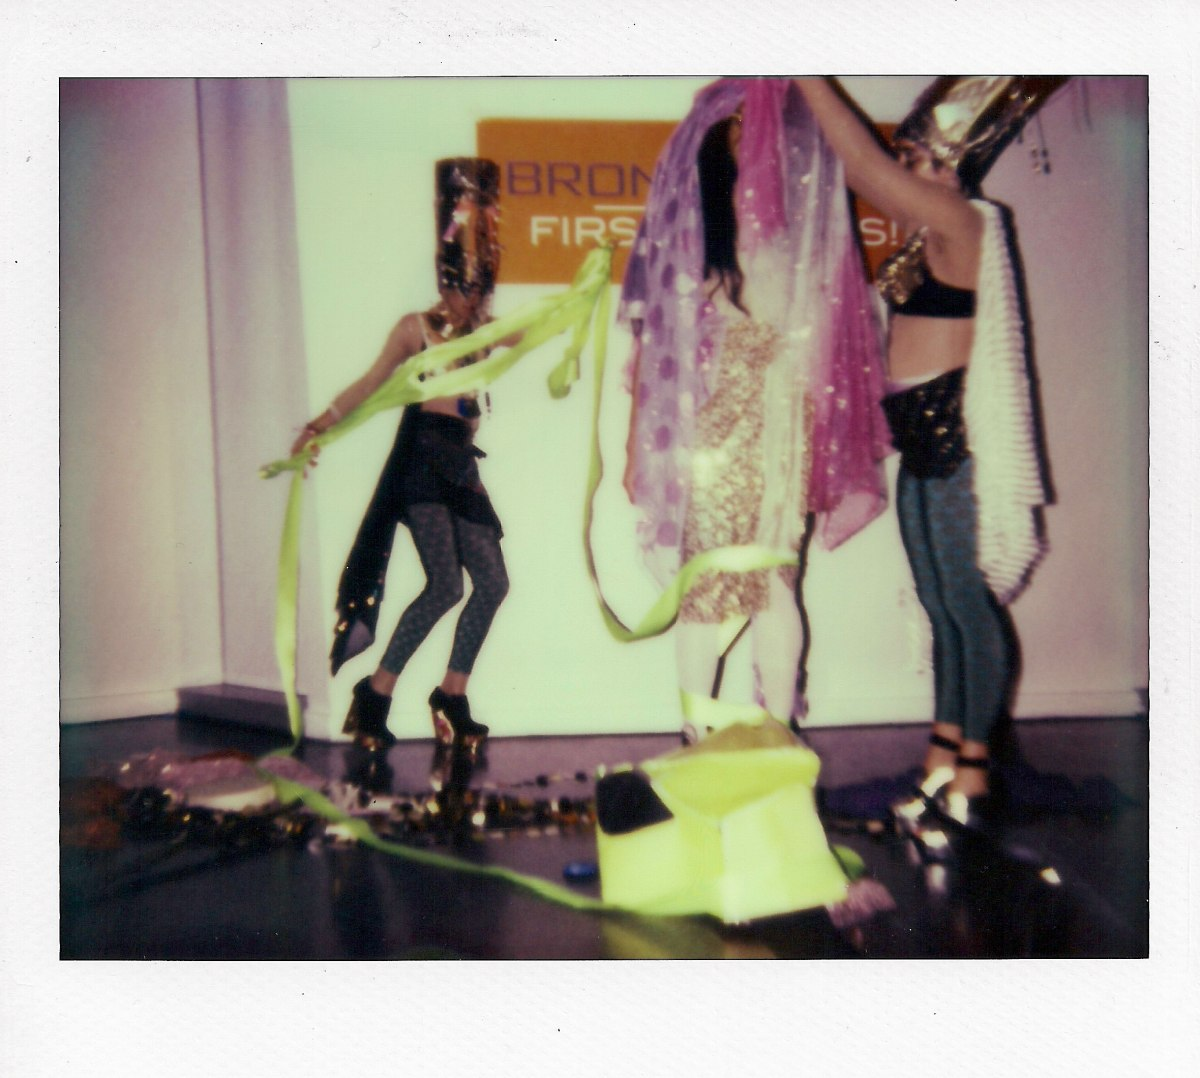 Go! Push Pops Queens Domin8tin at Bronx Museum photo credits to Marie Tomanova